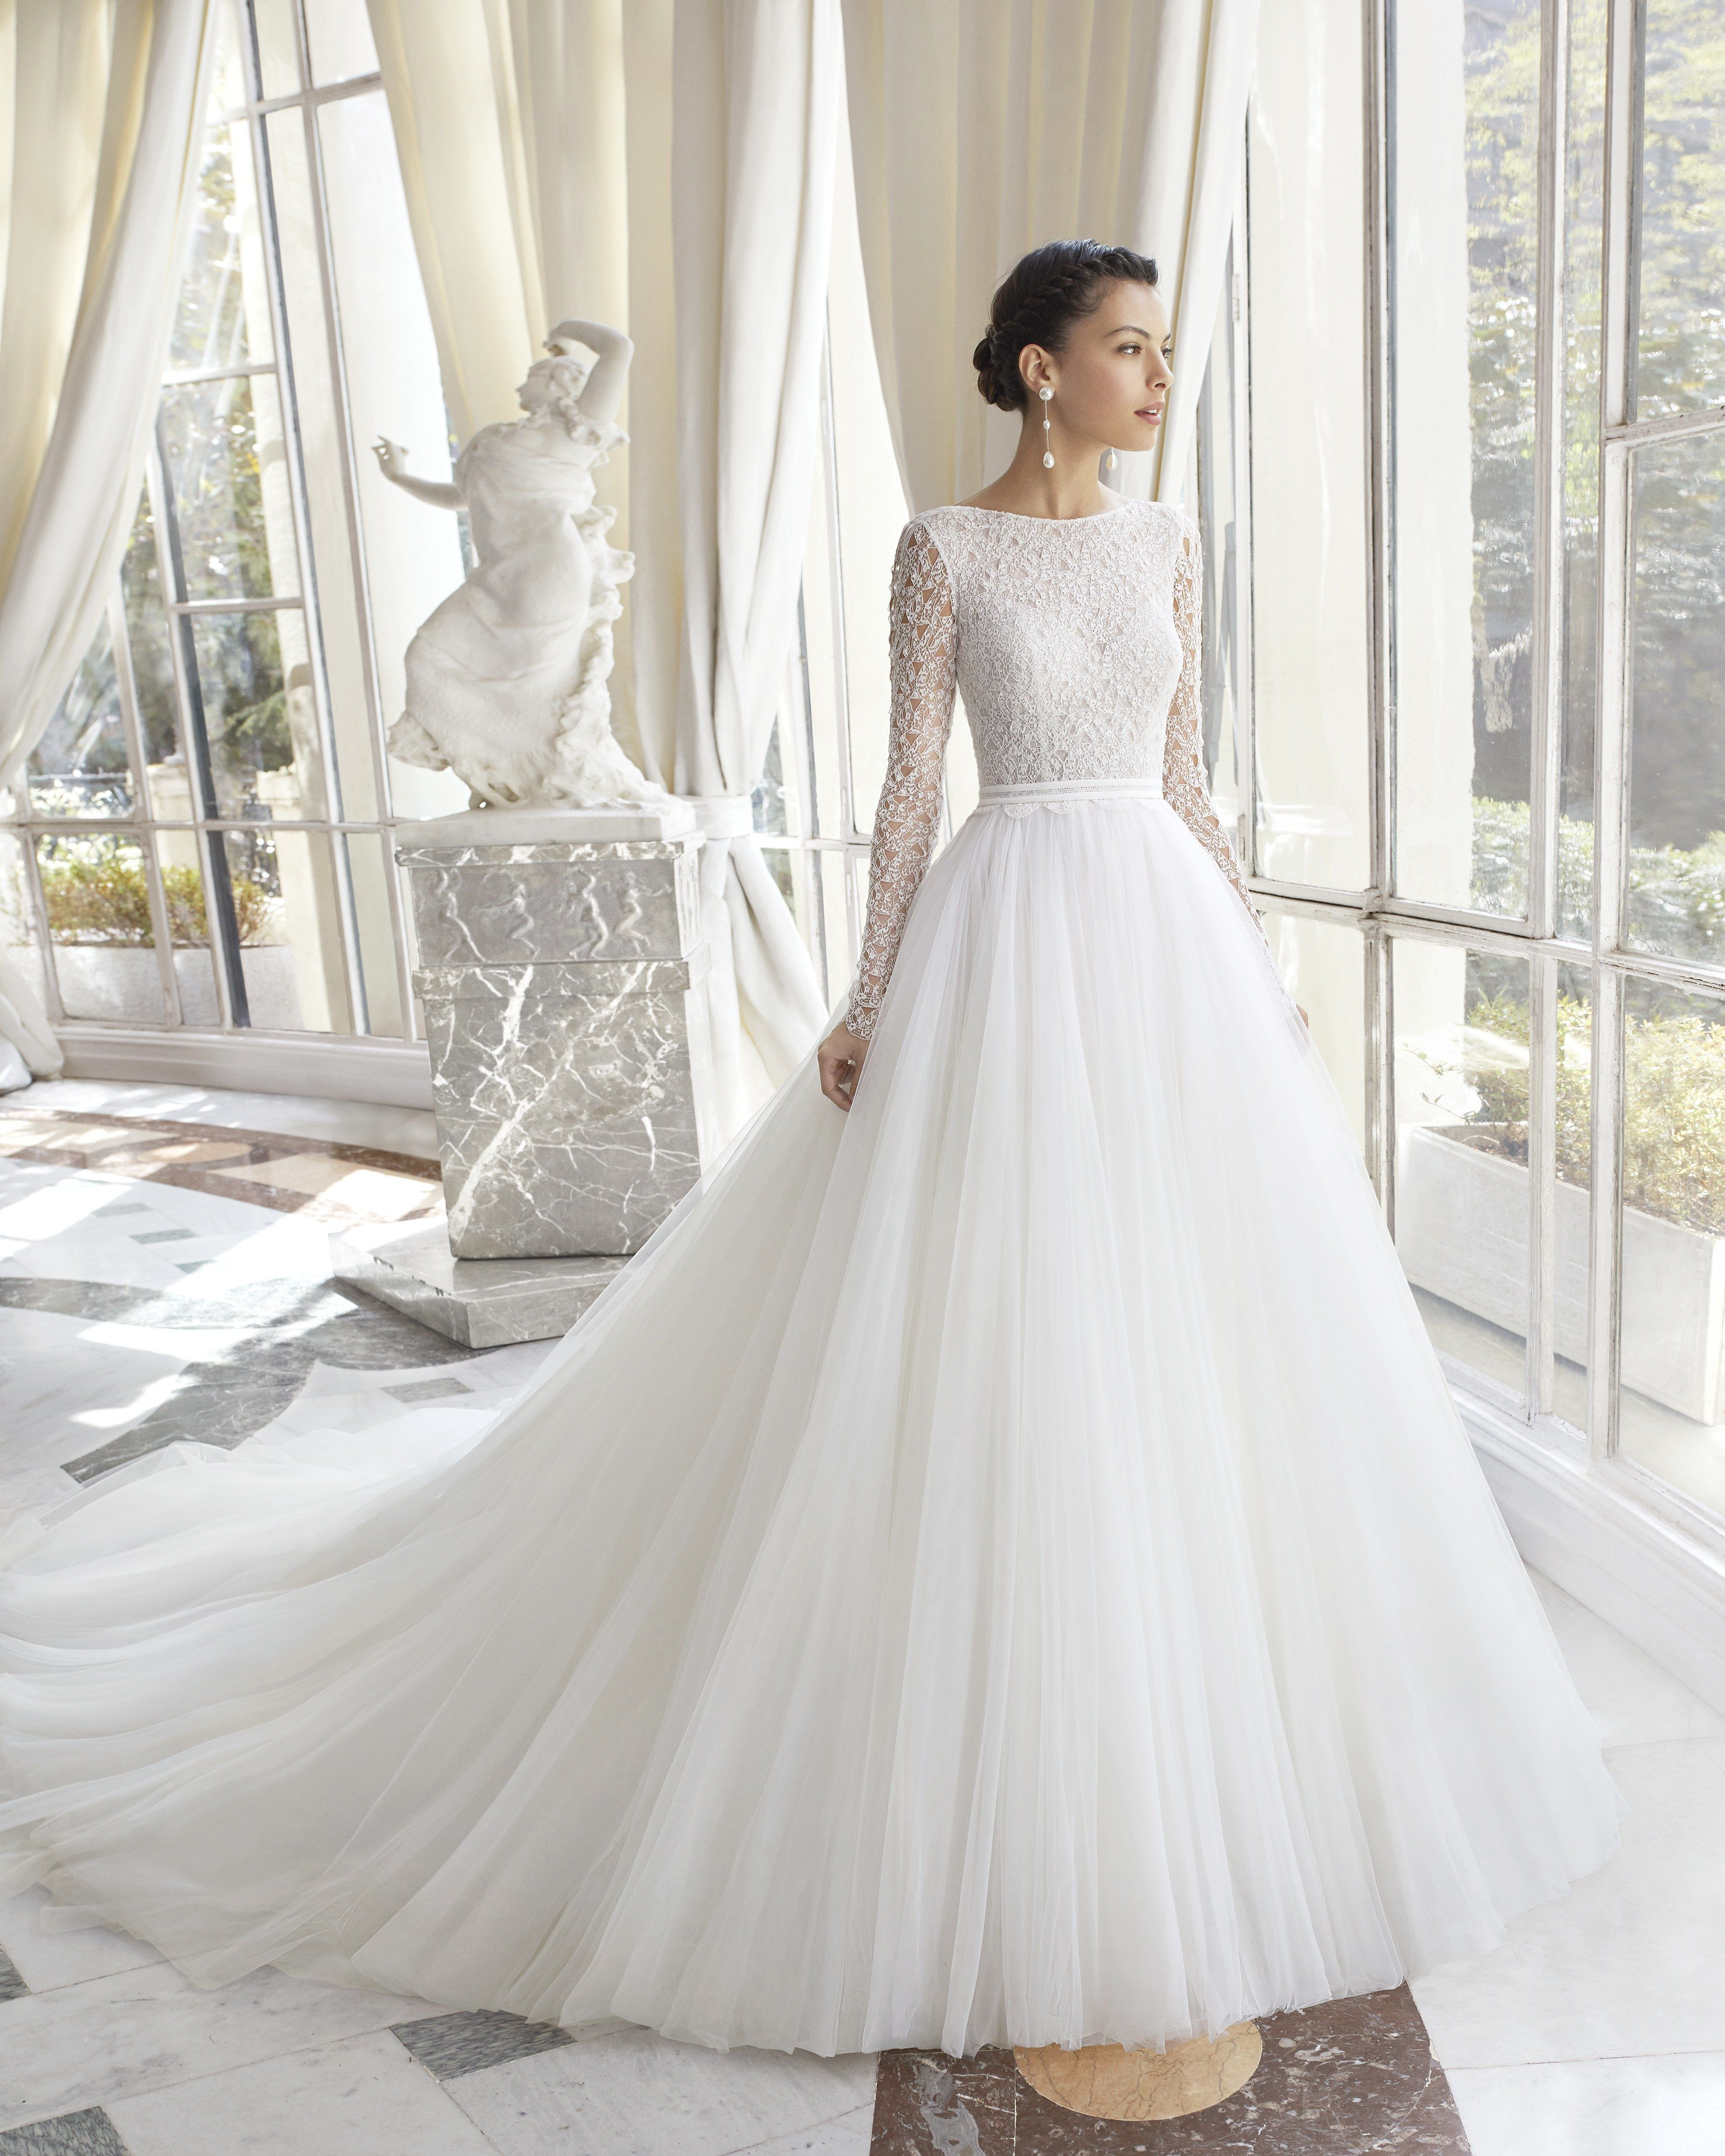 Princess Eugenie S Wedding Dress Will Probably Look Like This Wedding Dress Long Sleeve Online Wedding Dress Wedding Dresses [ 4157 x 3326 Pixel ]